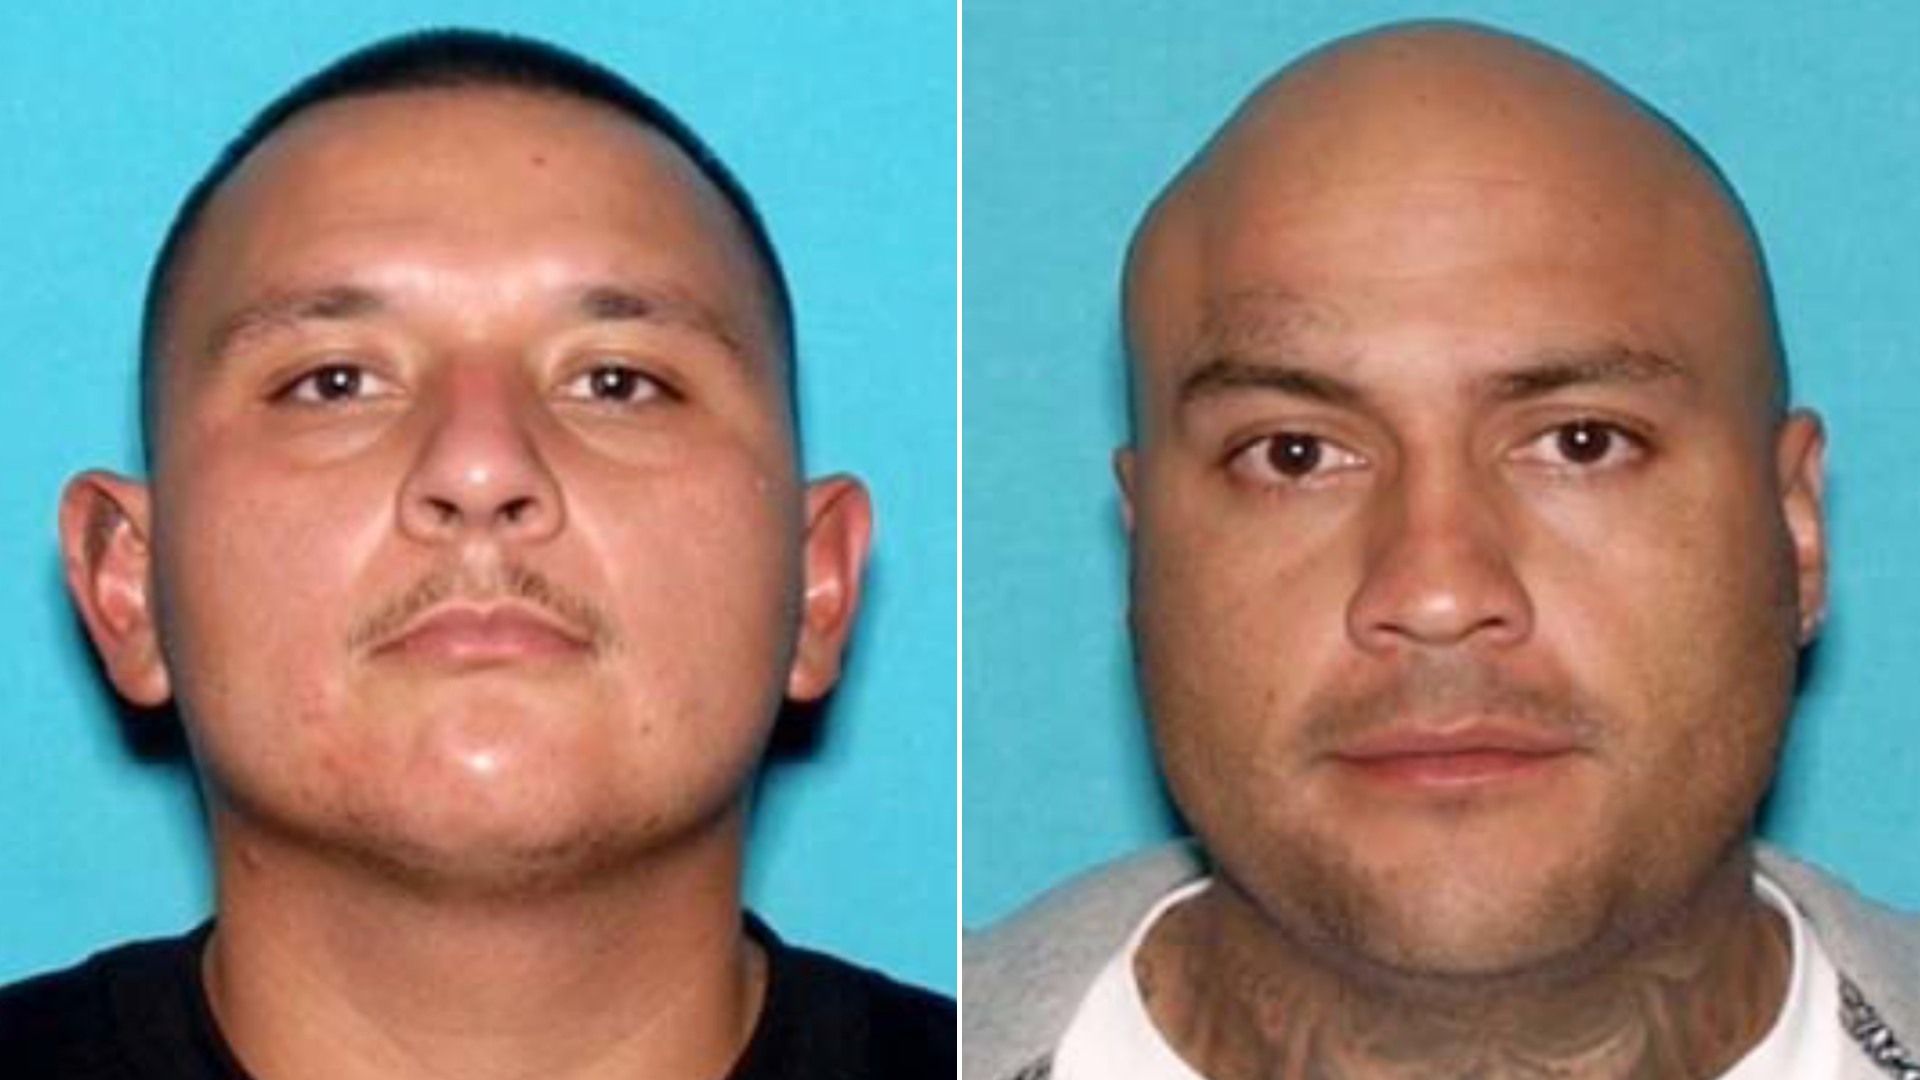 Joseph Mendoza, left, and Sal Fernandez are seen in undated photos released March 16, 2021, by the Garden Grove Police Department.